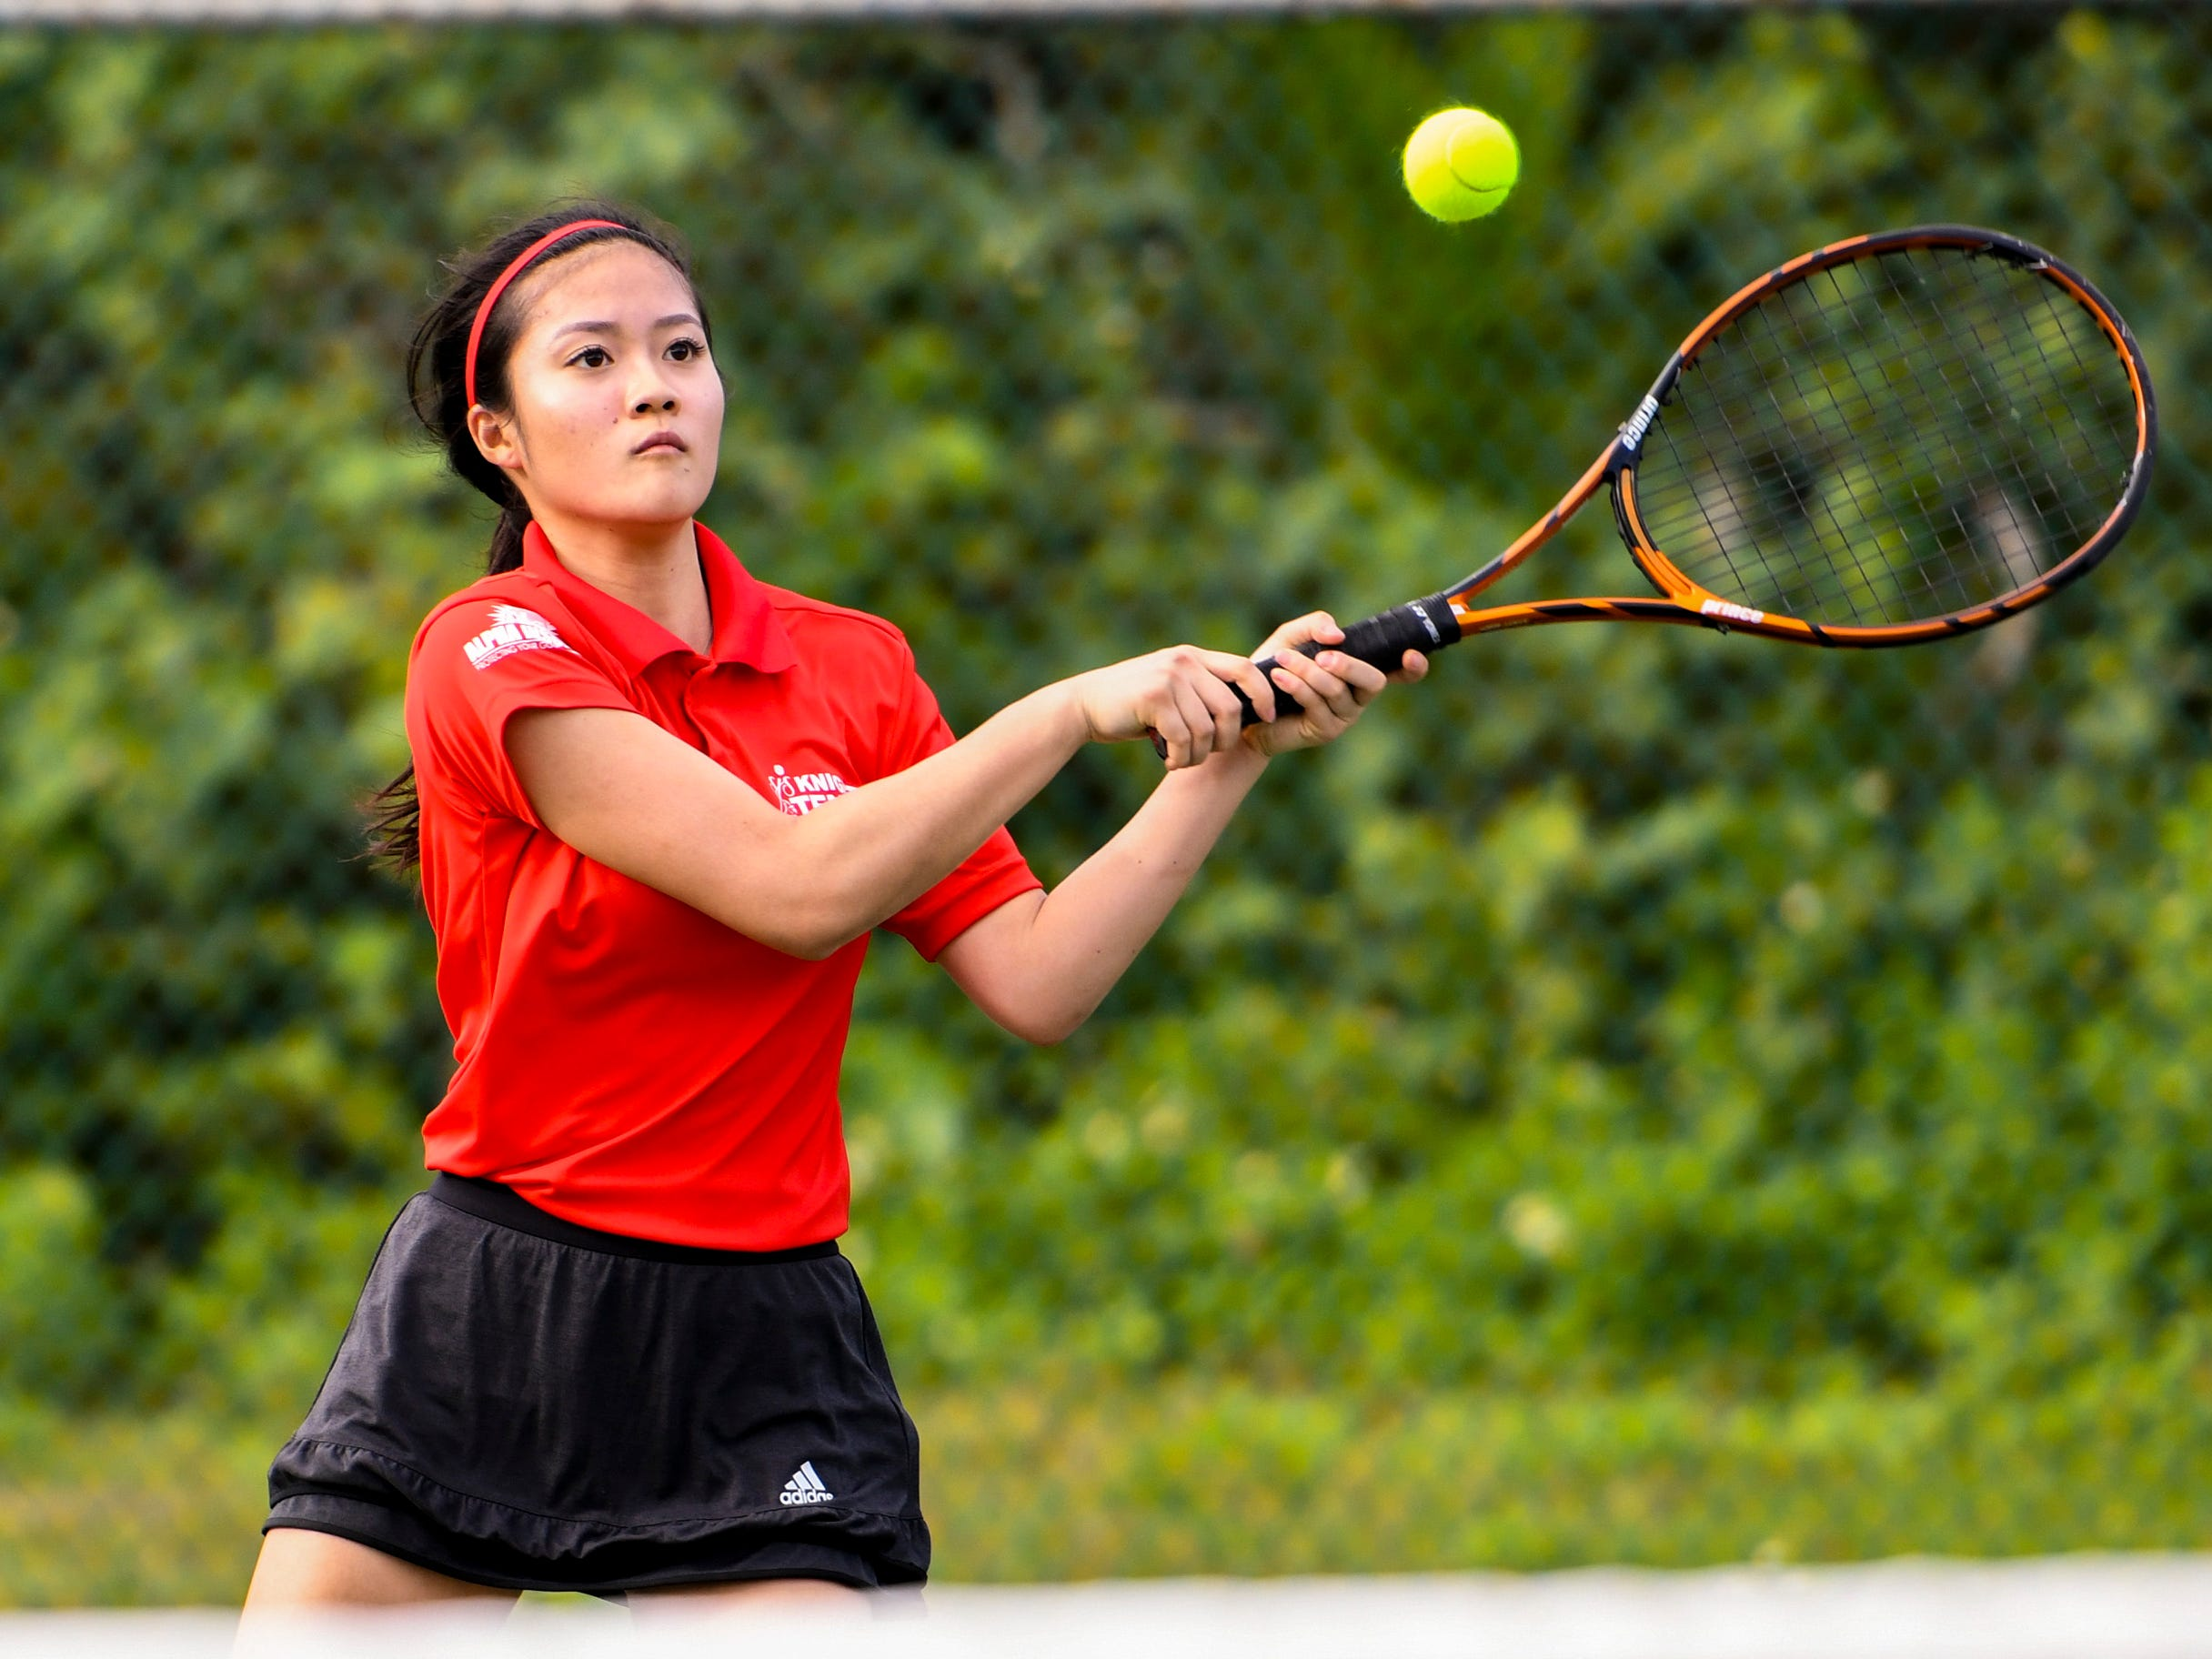 St. John's Knights' Ayaka Lin returns a volley during an Interscholastic Athletic Association of Guam tennis singles match against Academy of Our Lady Guam Cougars' Mika Alcantara at the Rick Ninete Tennis Center in Hagåtna on Thursday, Jan. 31, 2019.